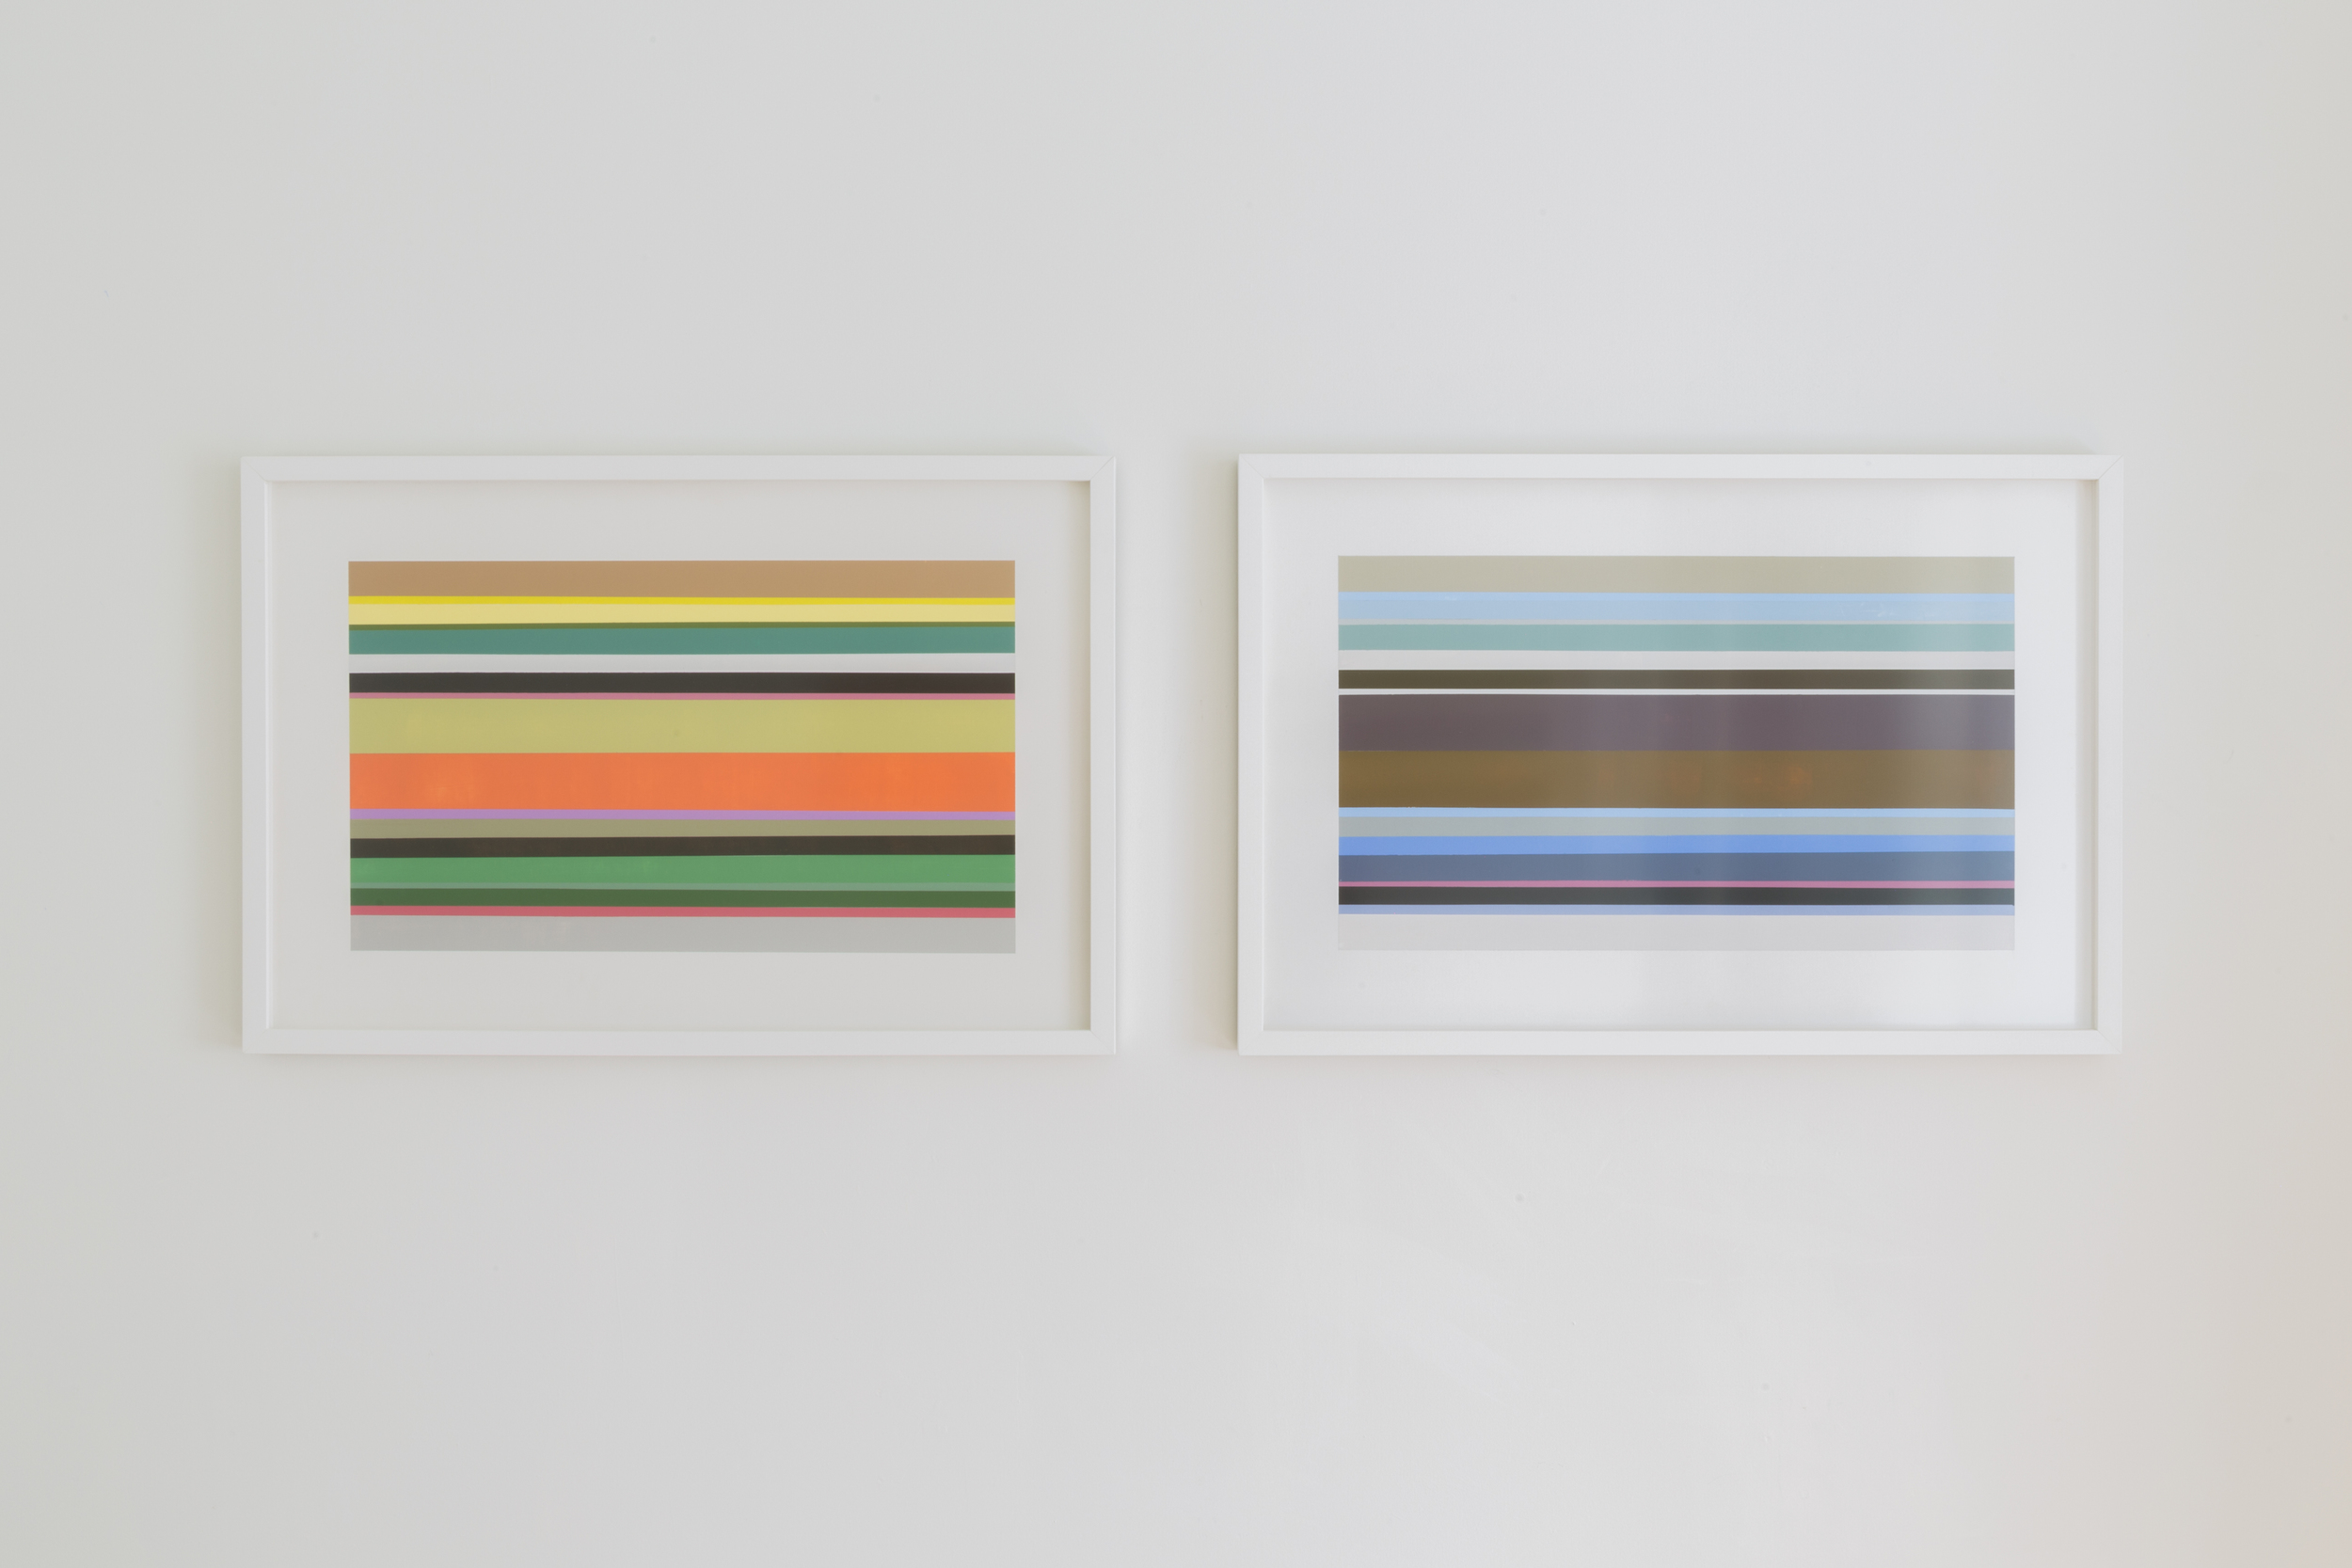 Solo Exhibition at 57W57th Arts, Landscape As Time